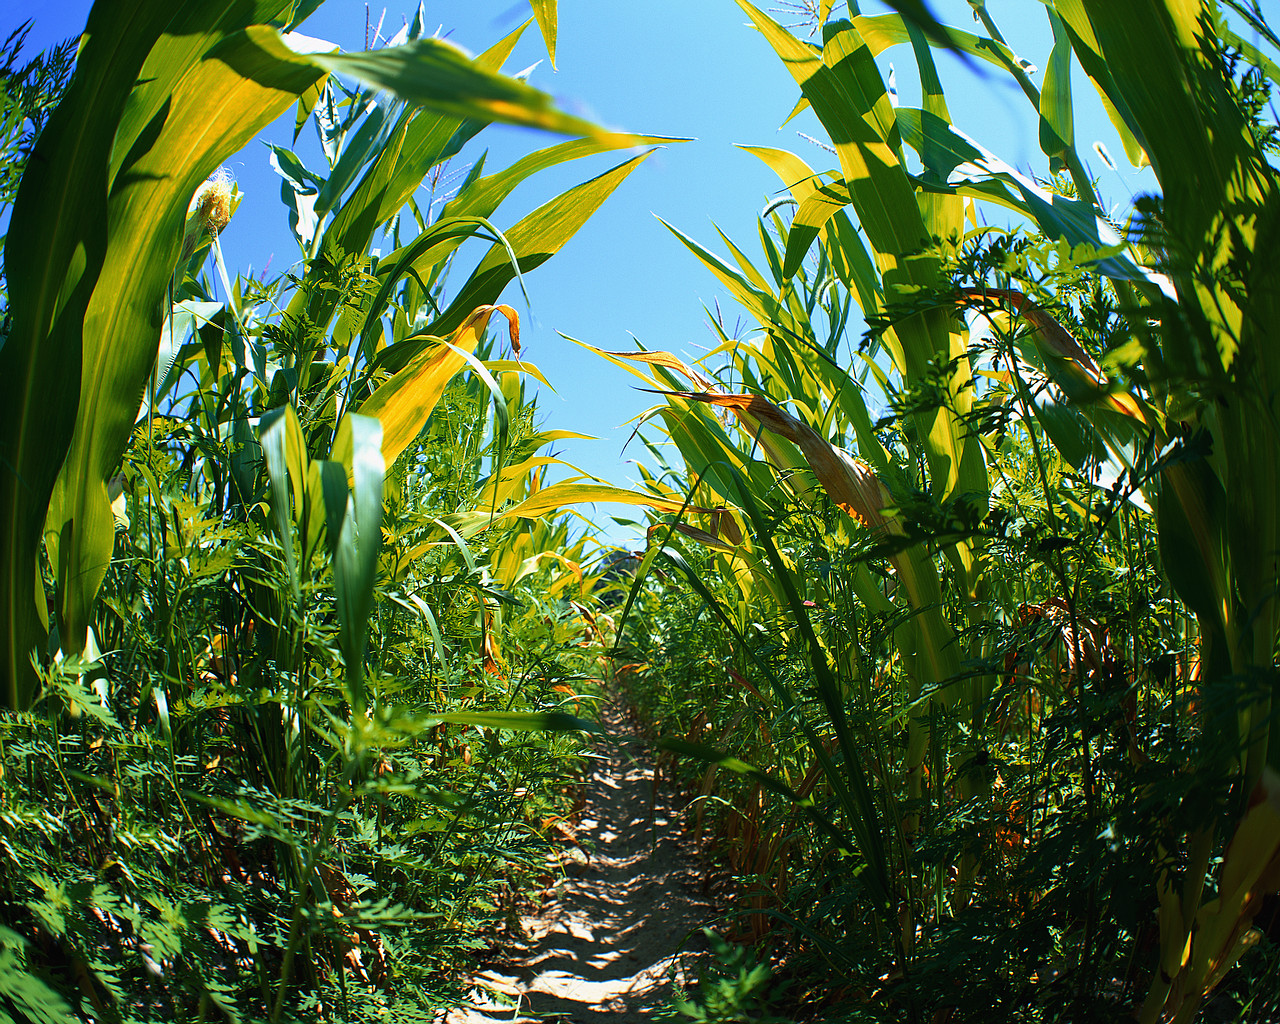 Trail Through Corn Field